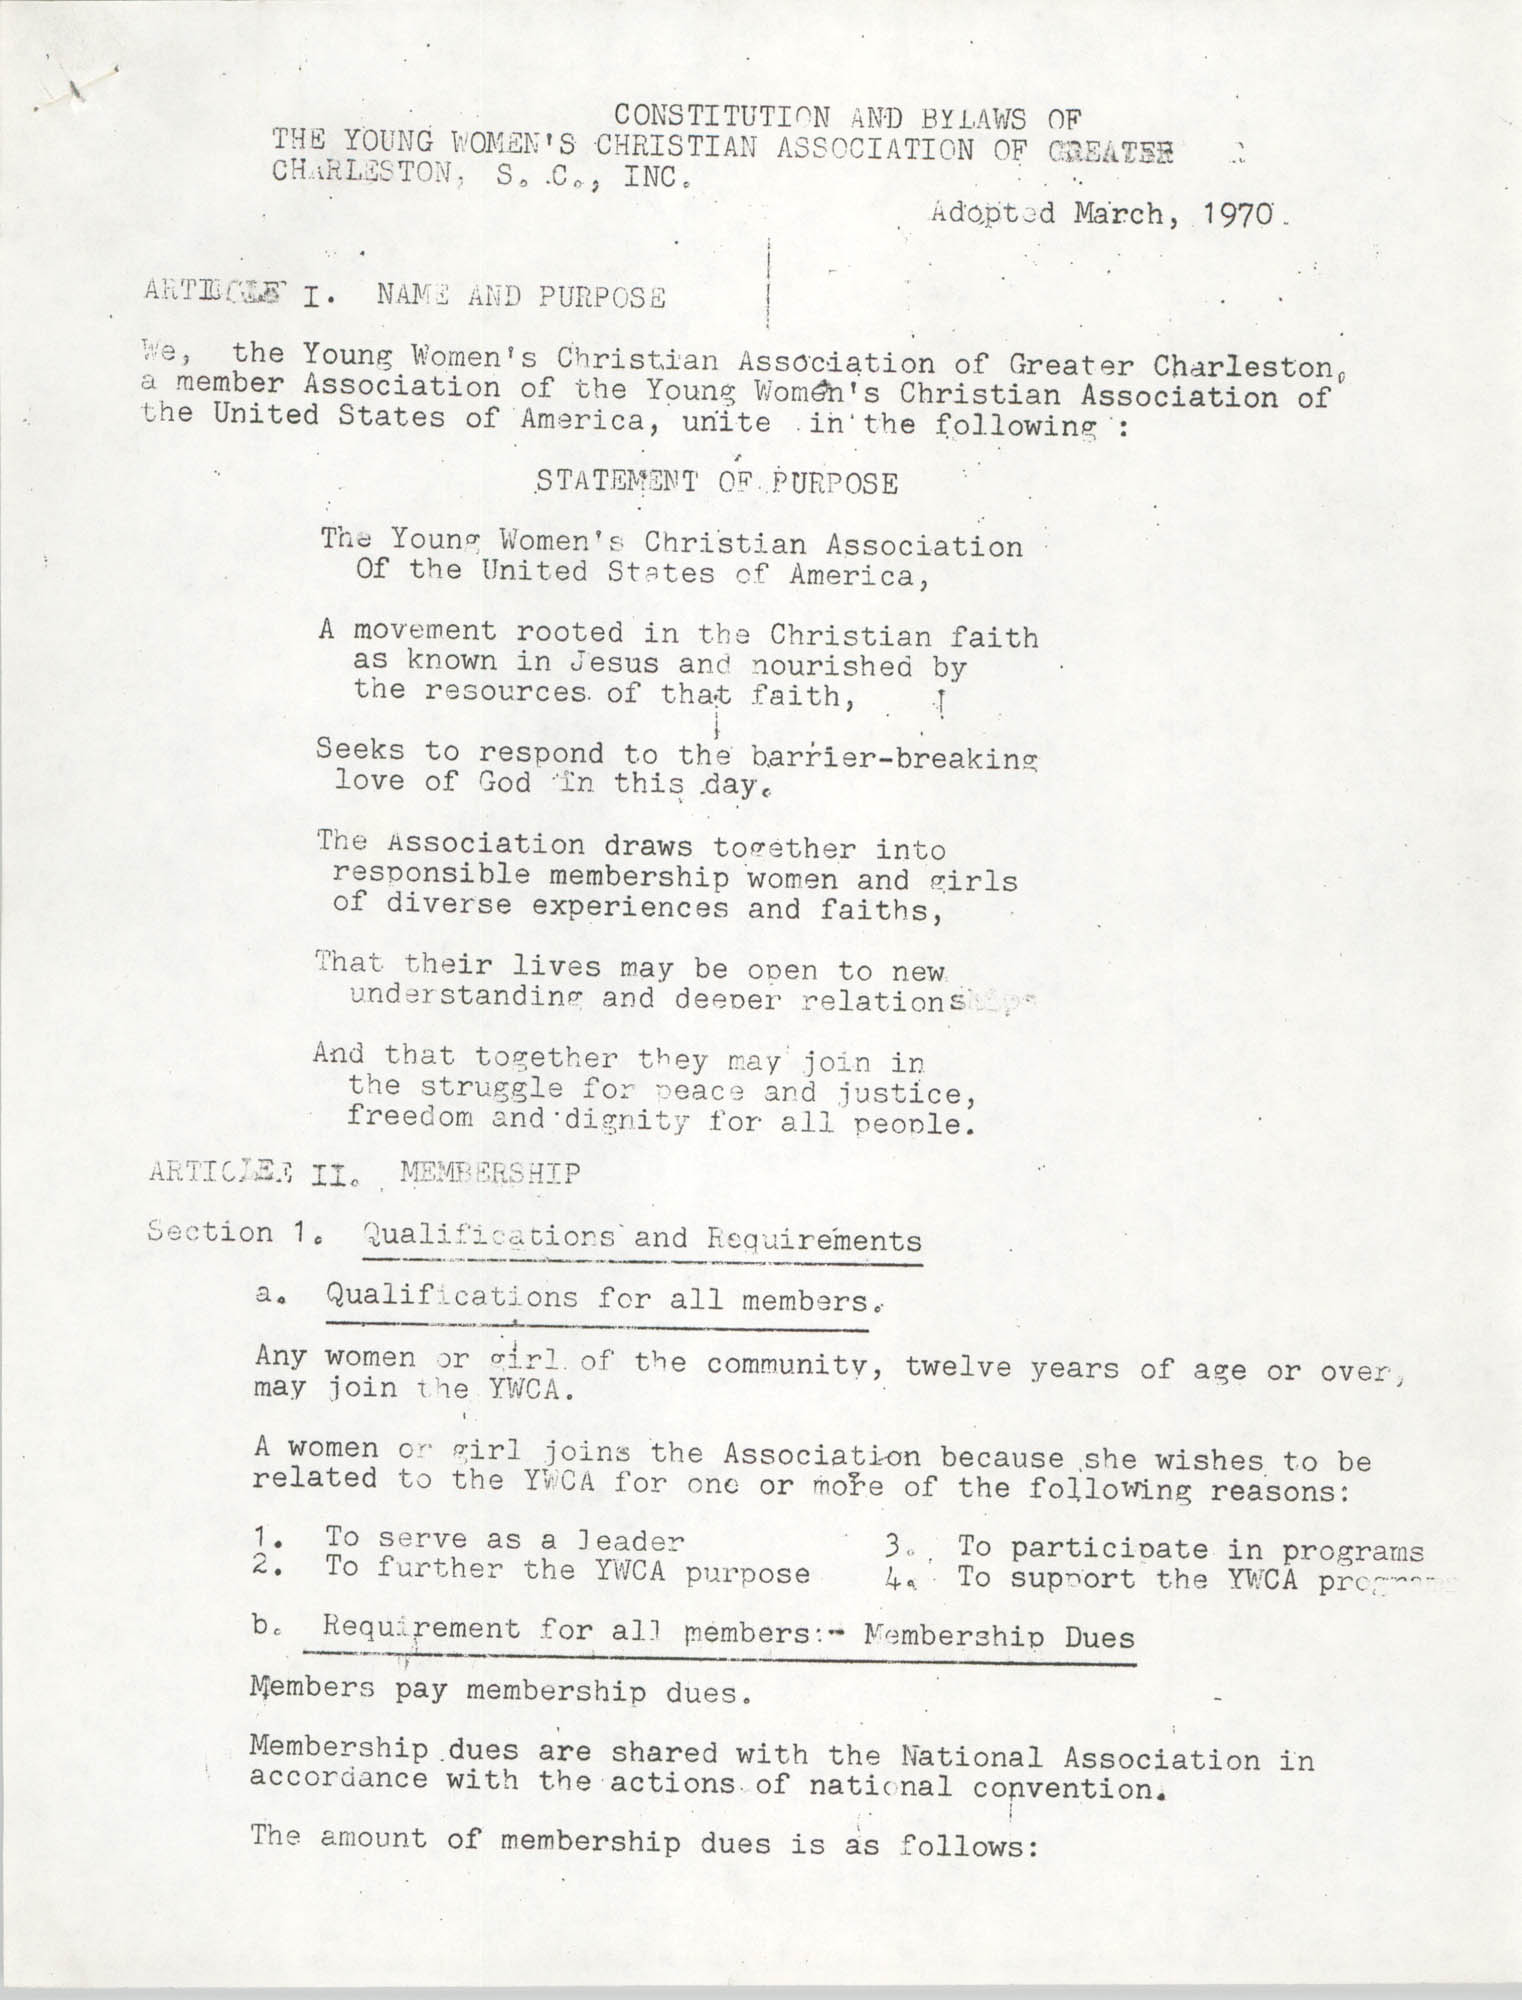 Constitution and By-Laws of the Young Women's Christian Association of Greater Charleston, Inc., Adopted March, 1970